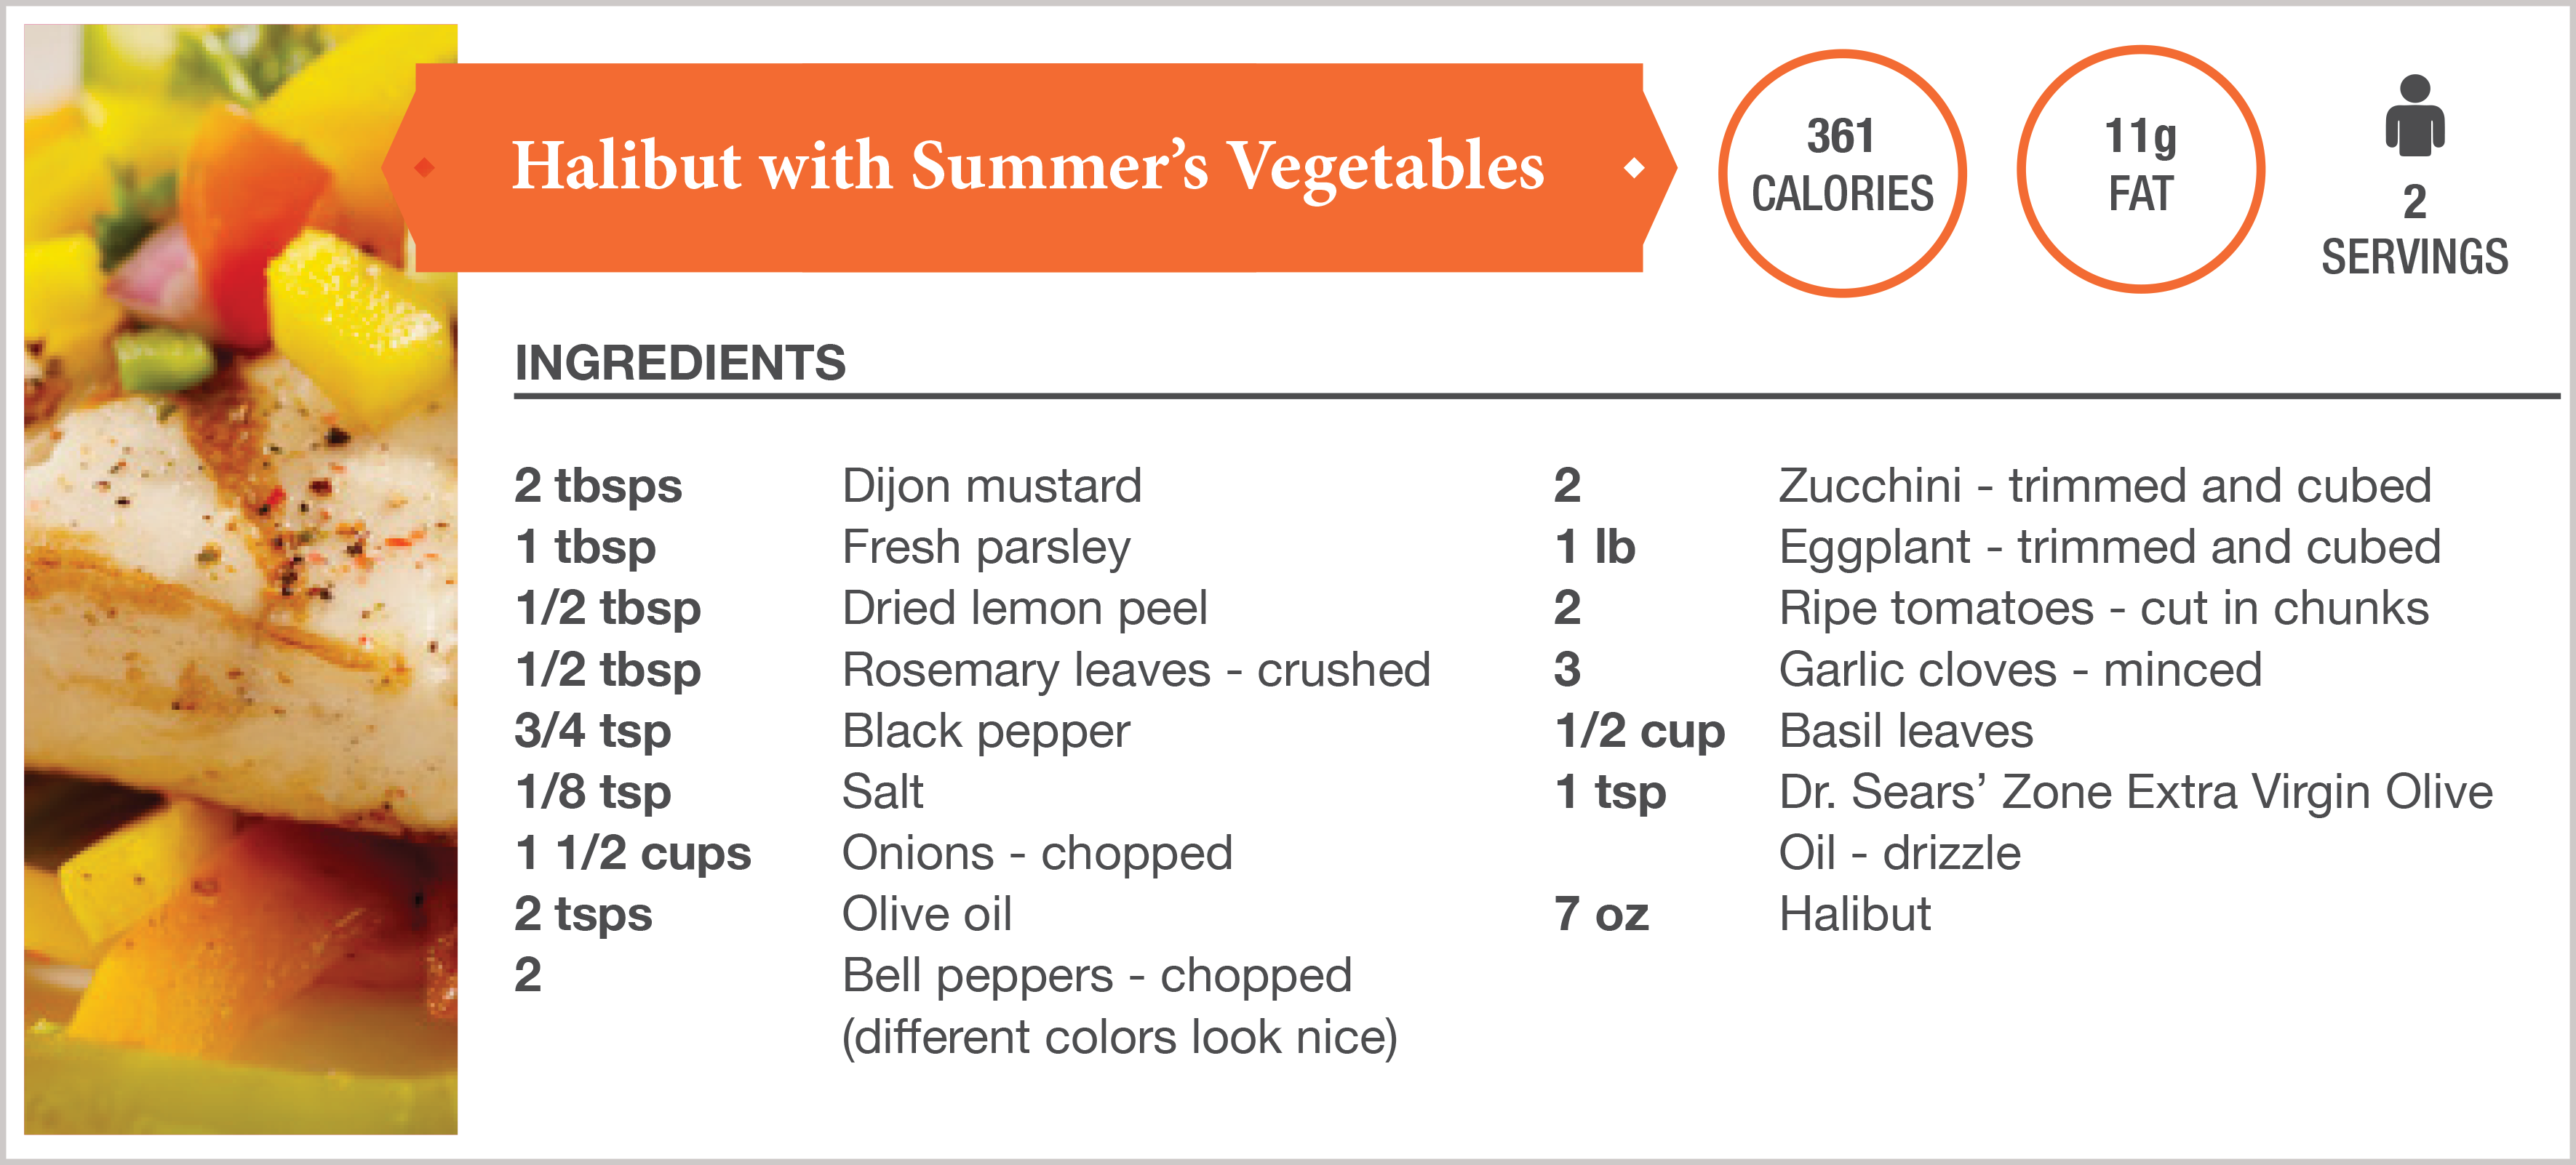 Halibut-with-Summer's-Vegetables